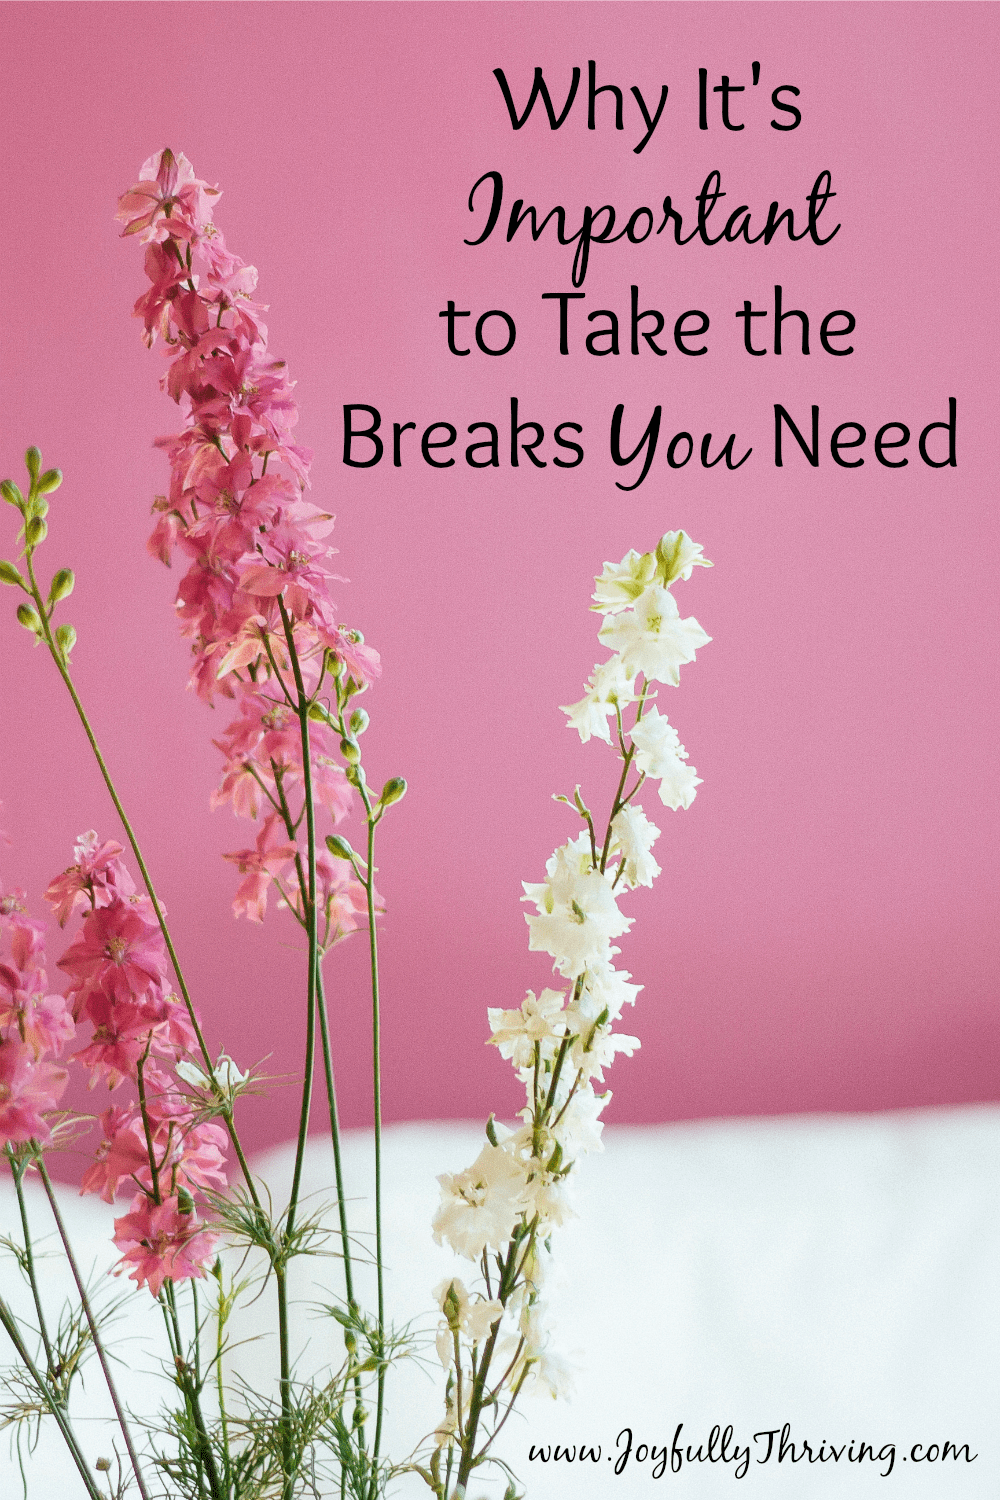 Why It's Important to Take the Breaks You Need